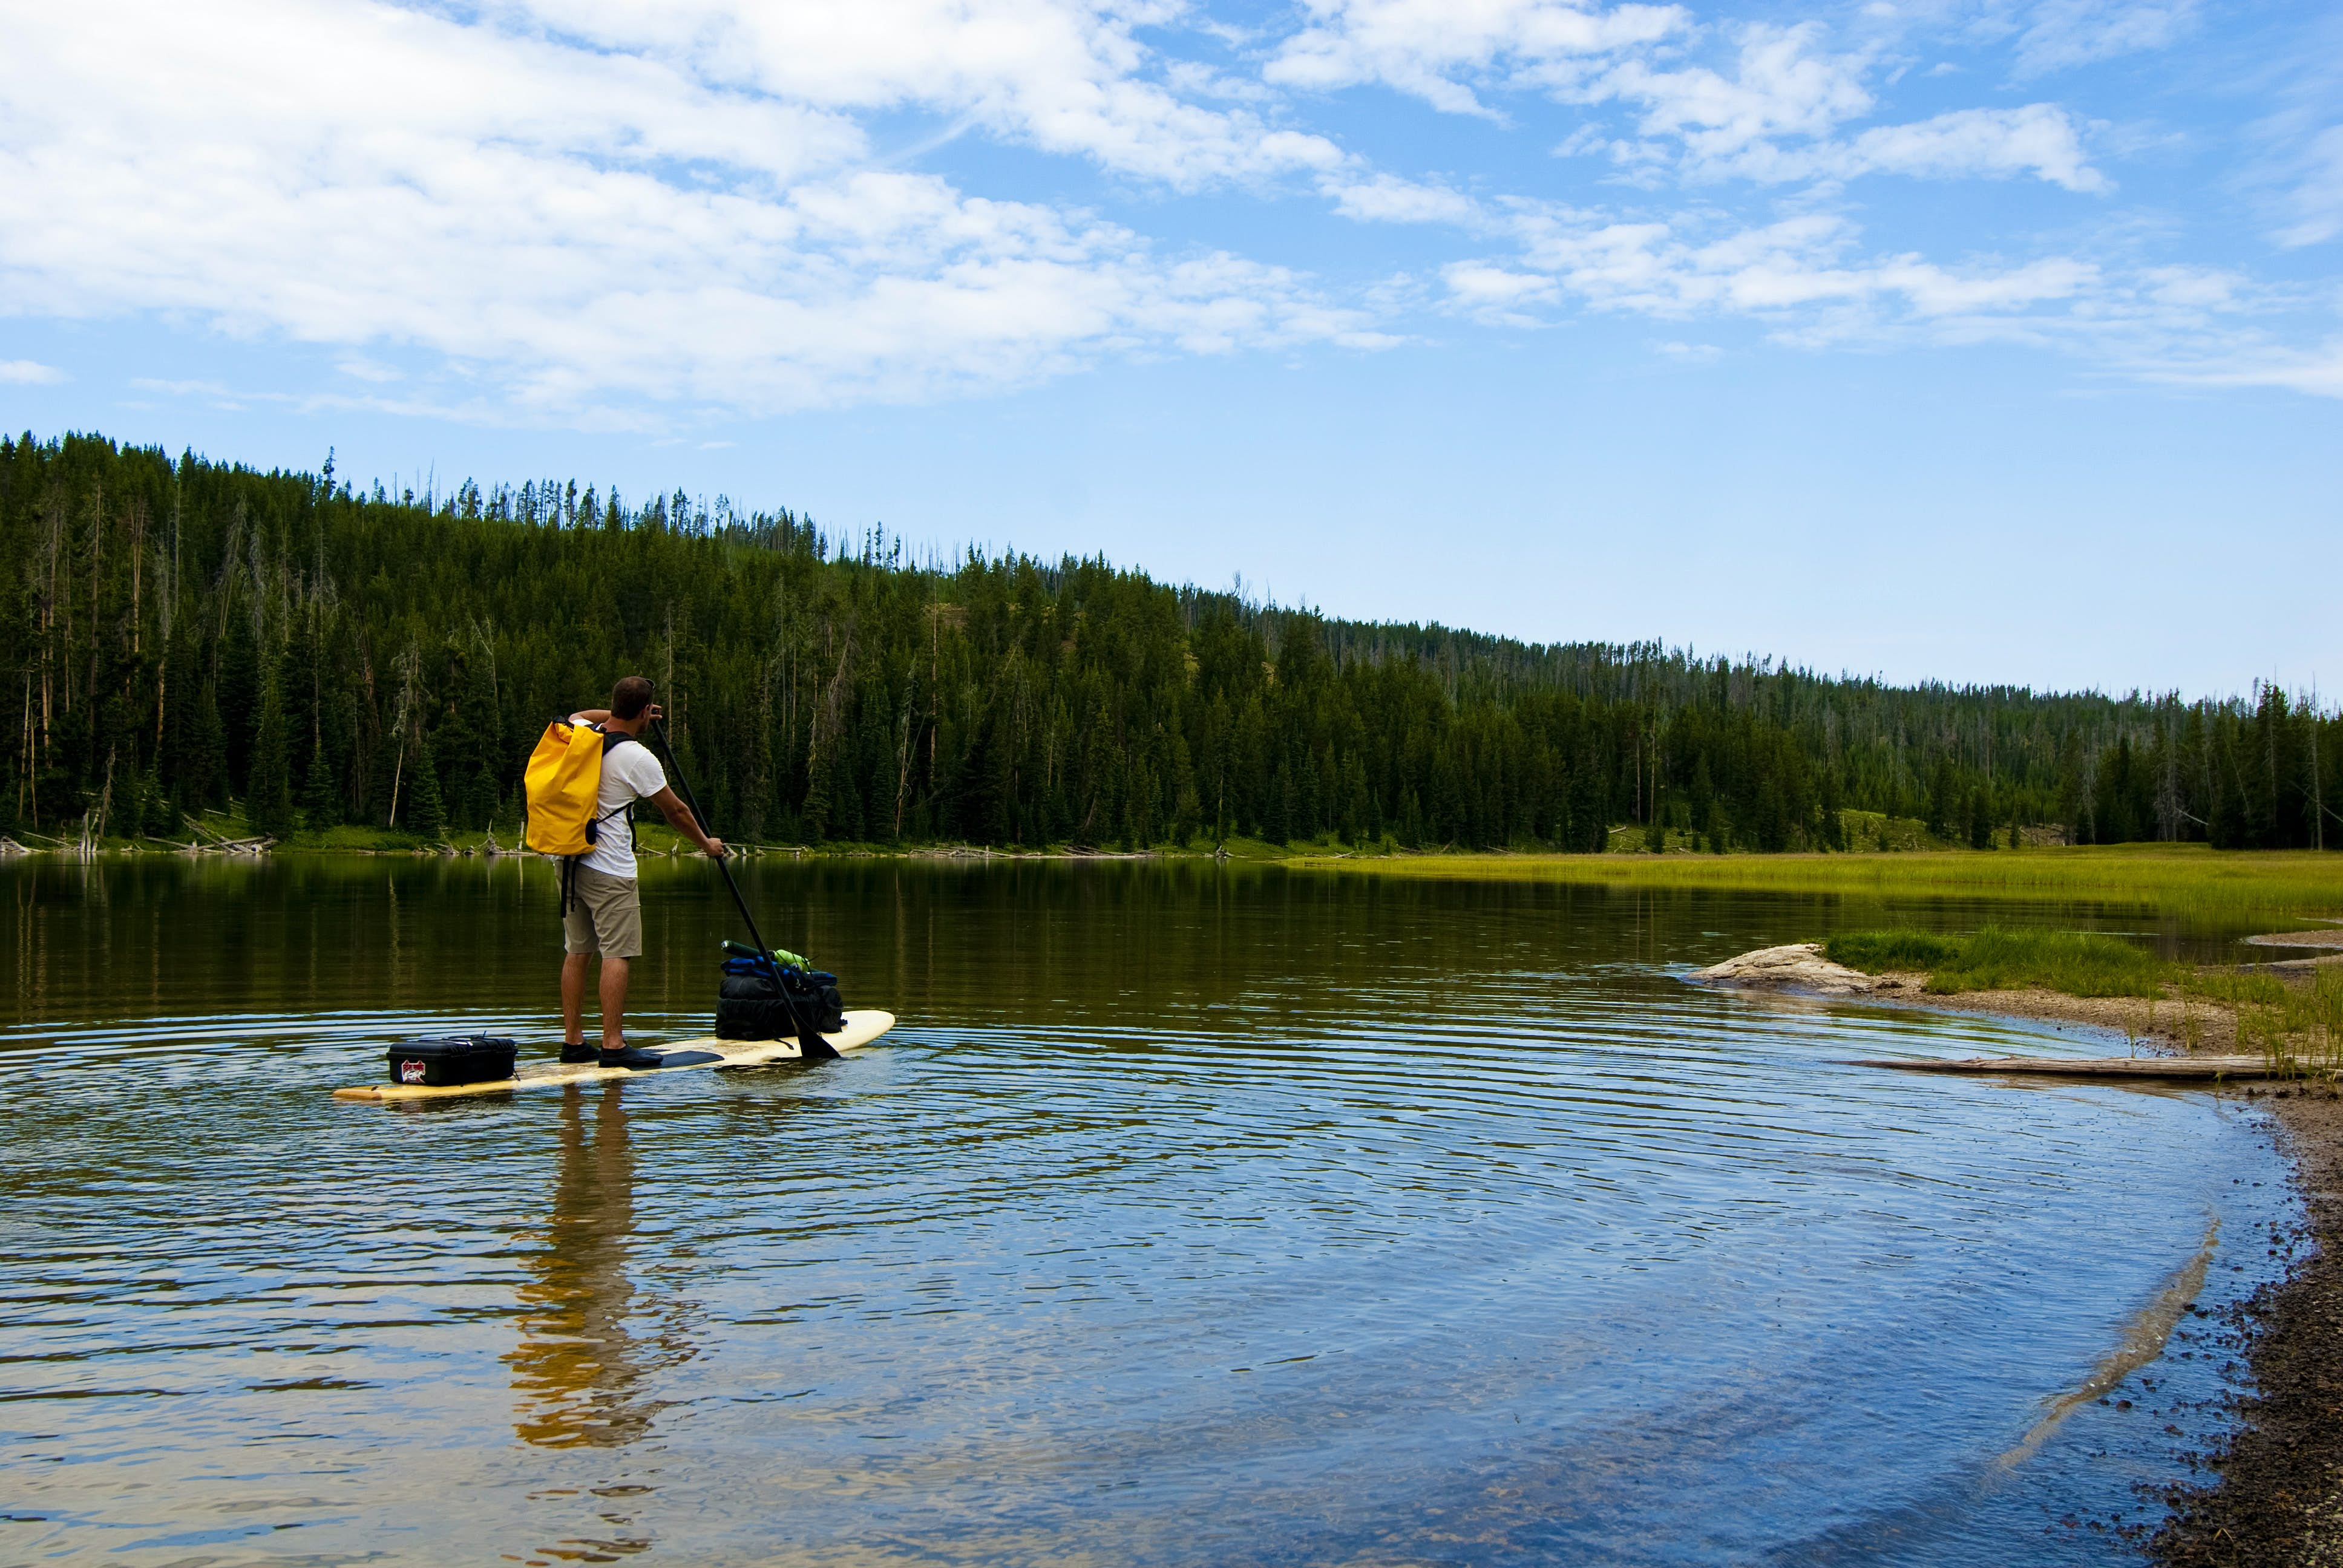 A stand-up paddleboarder on a lake in Yellowstone National Park